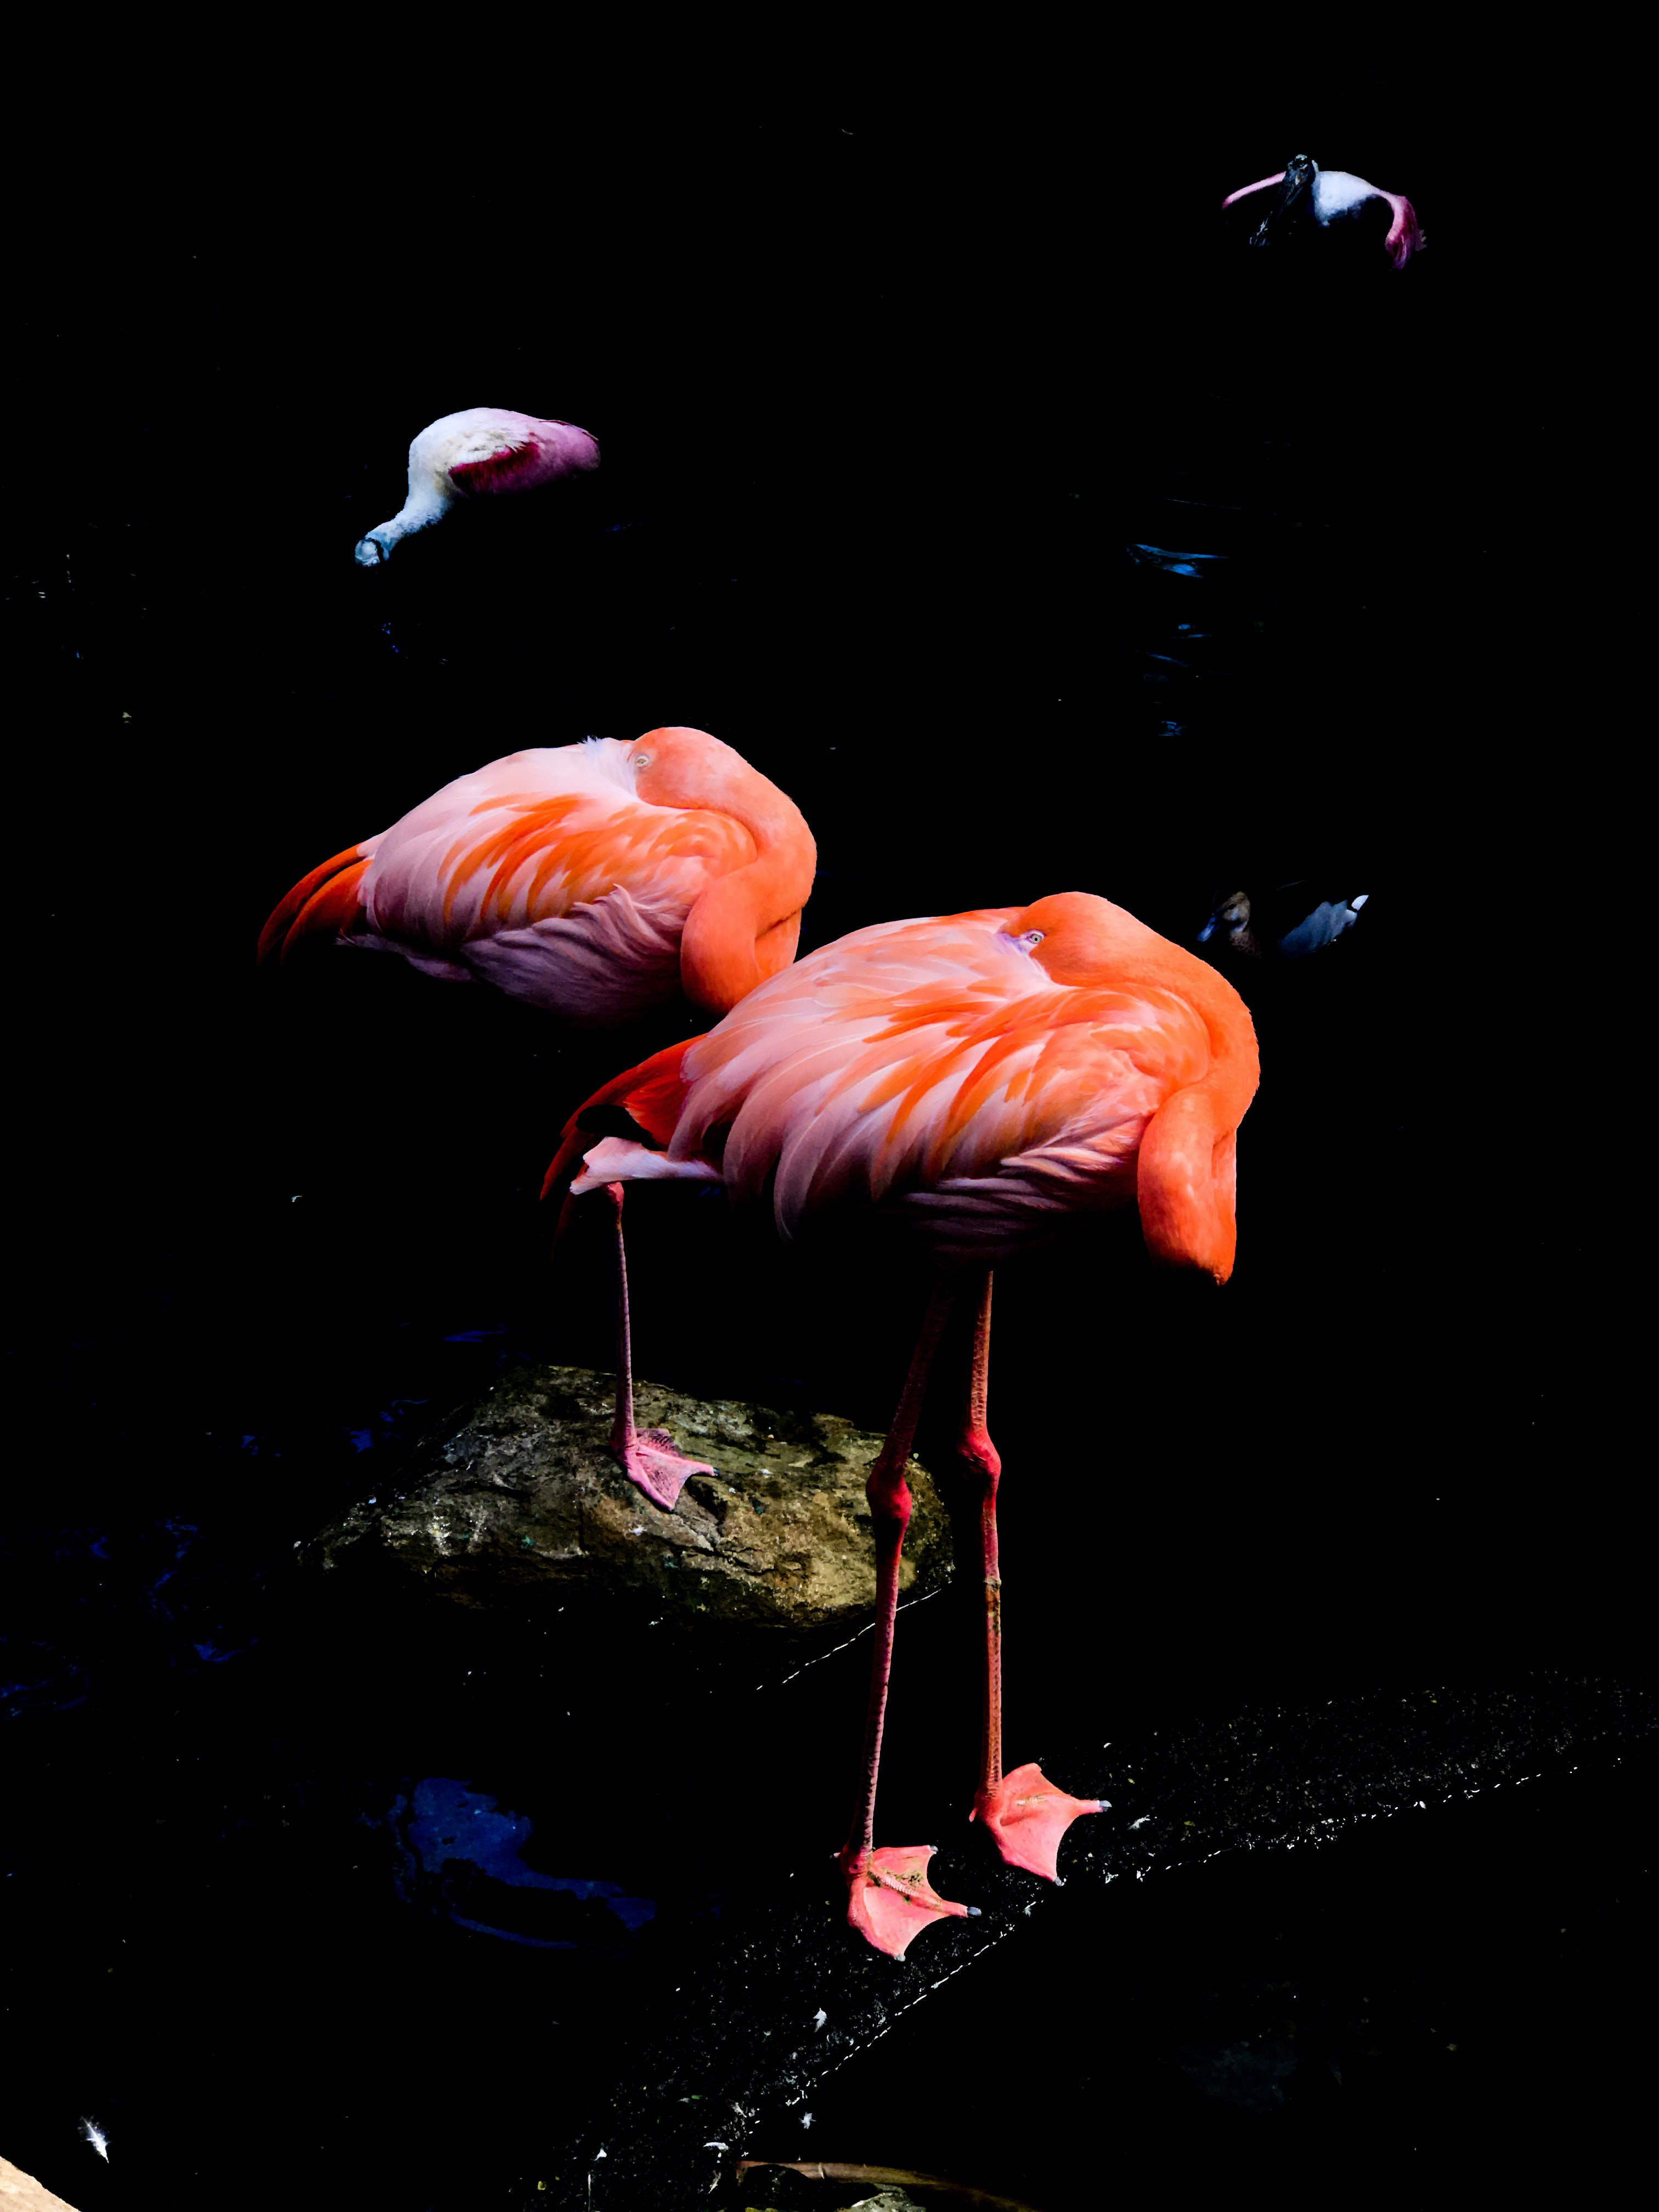 low-light photo of two orange flamingos